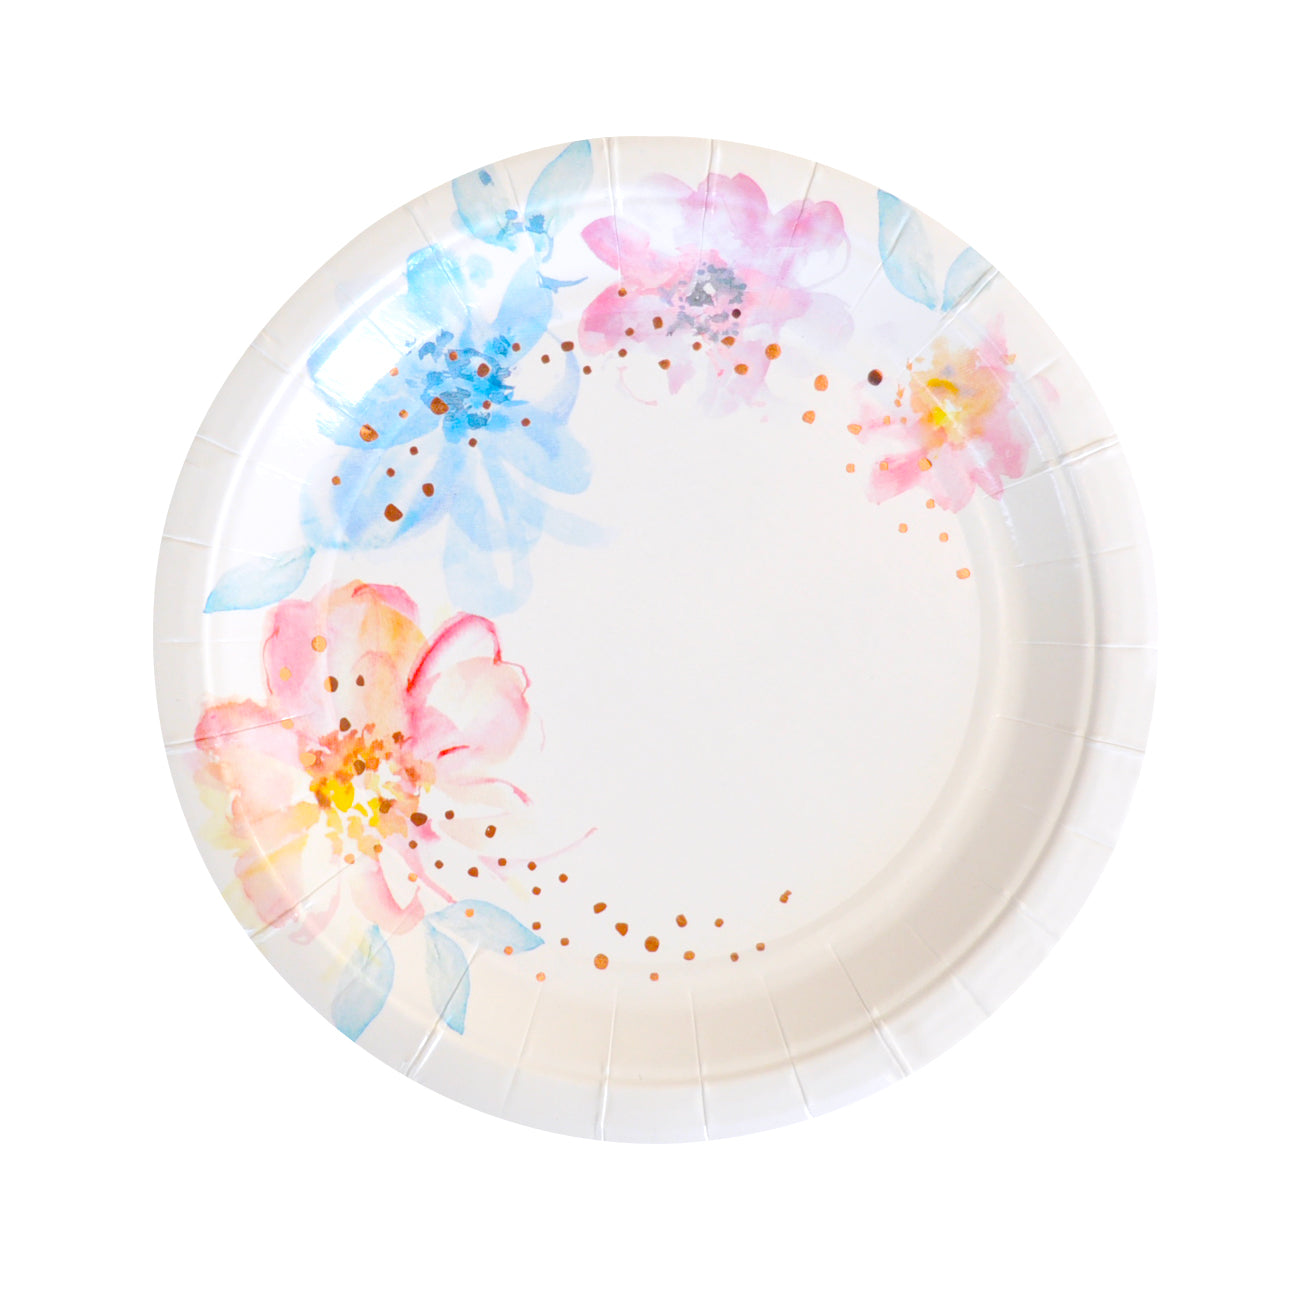 Floral Dessert Plate - Pack of 10 - Illume Partyware